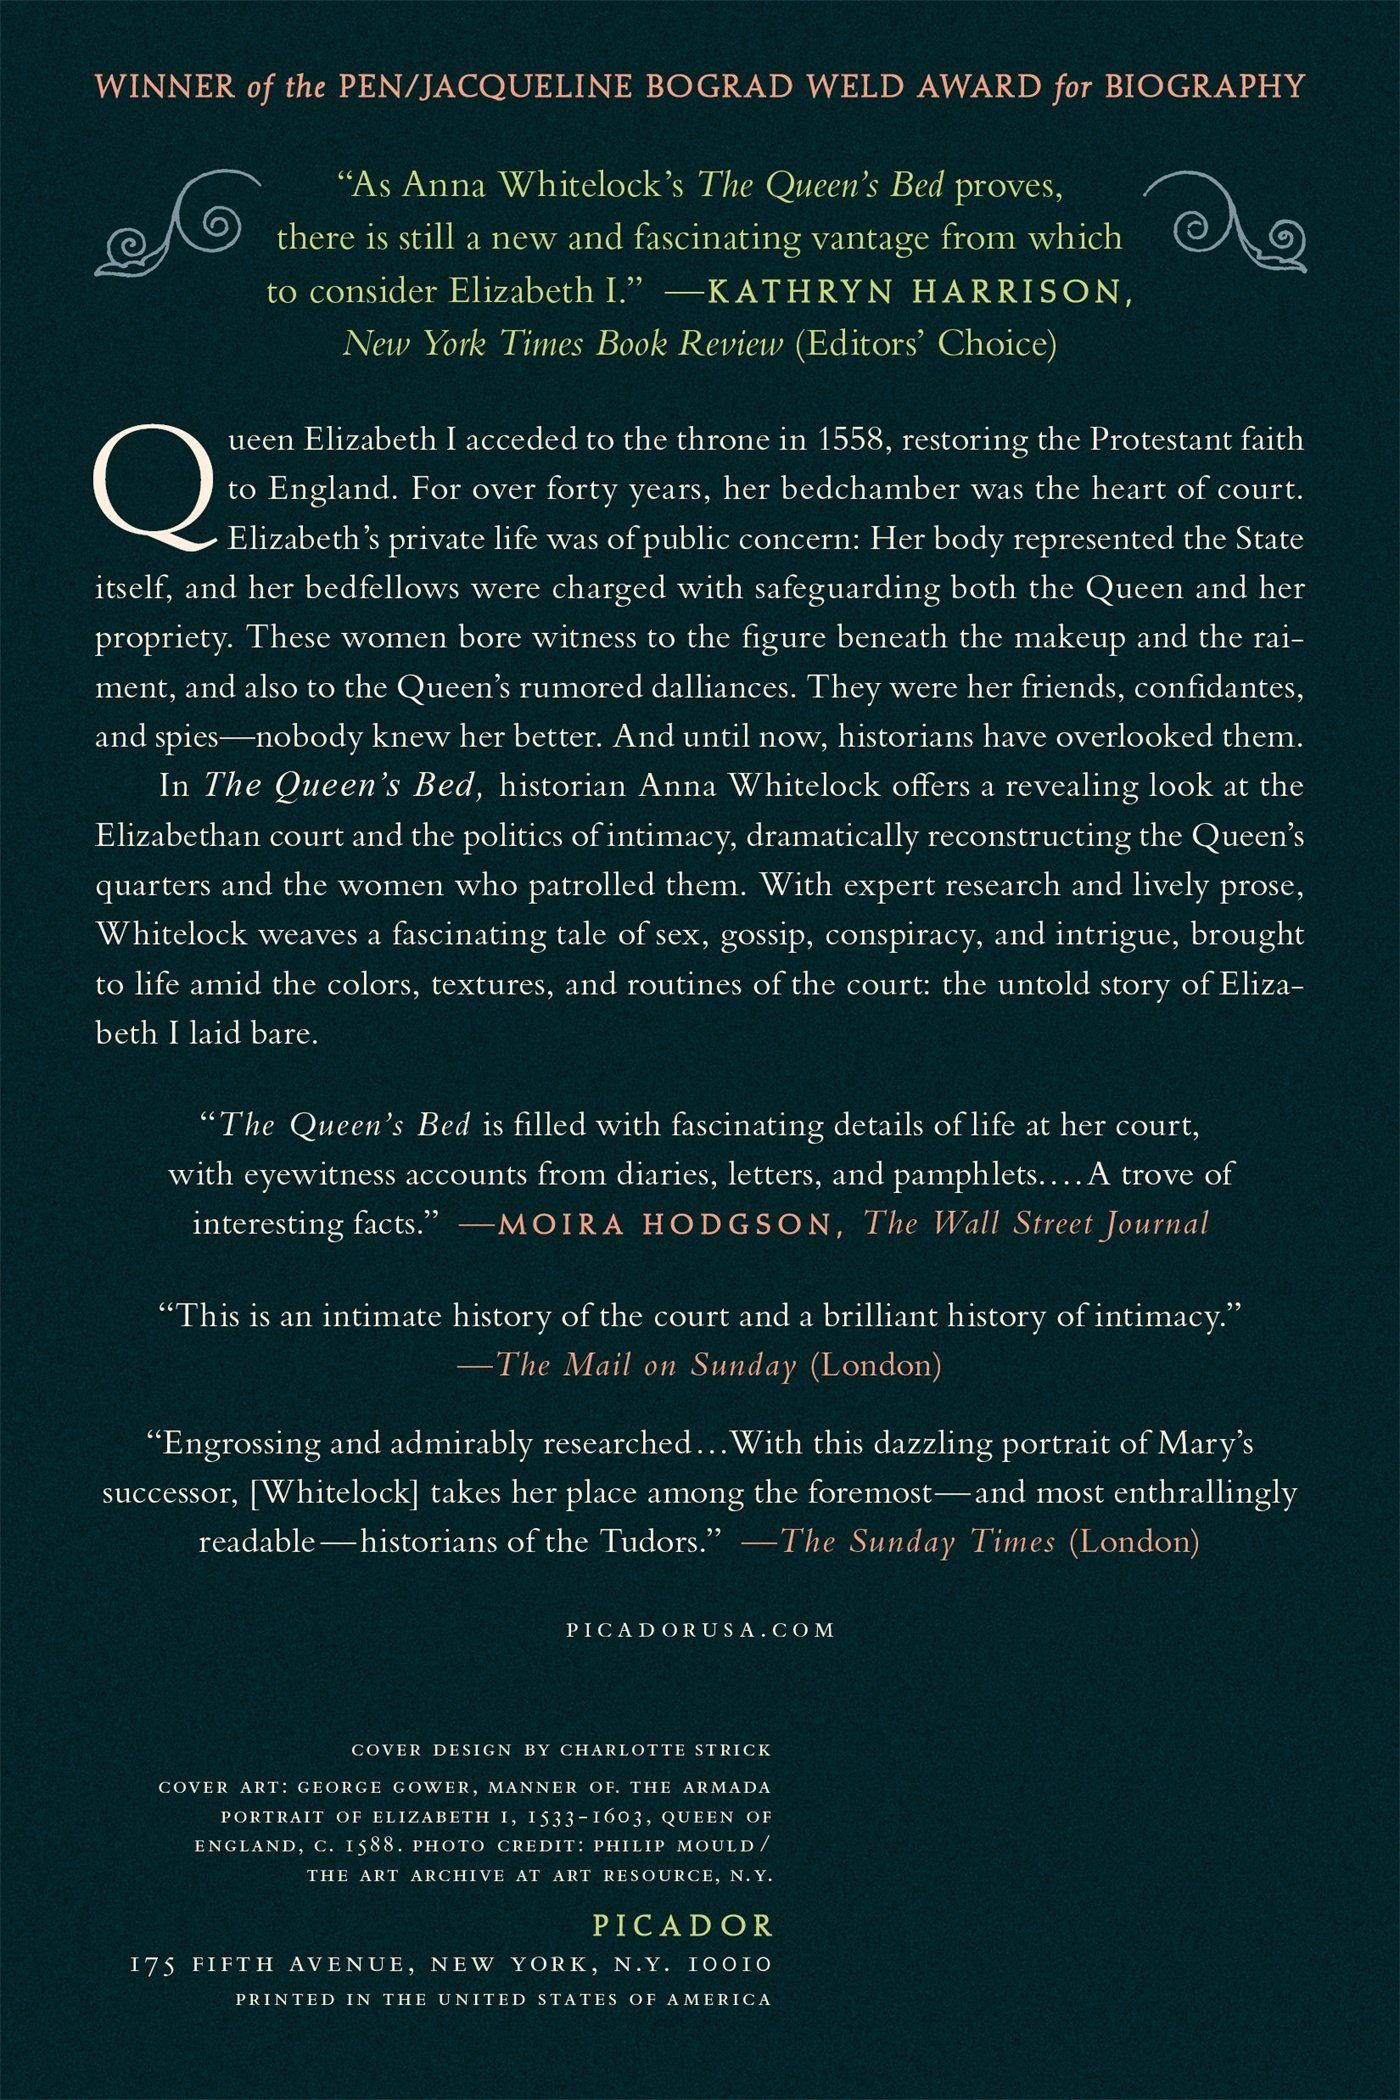 The Queen's Bed: An Intimate History of Elizabeth's Court: Anna Whitelock:  9781250062307: Amazon.com: Books